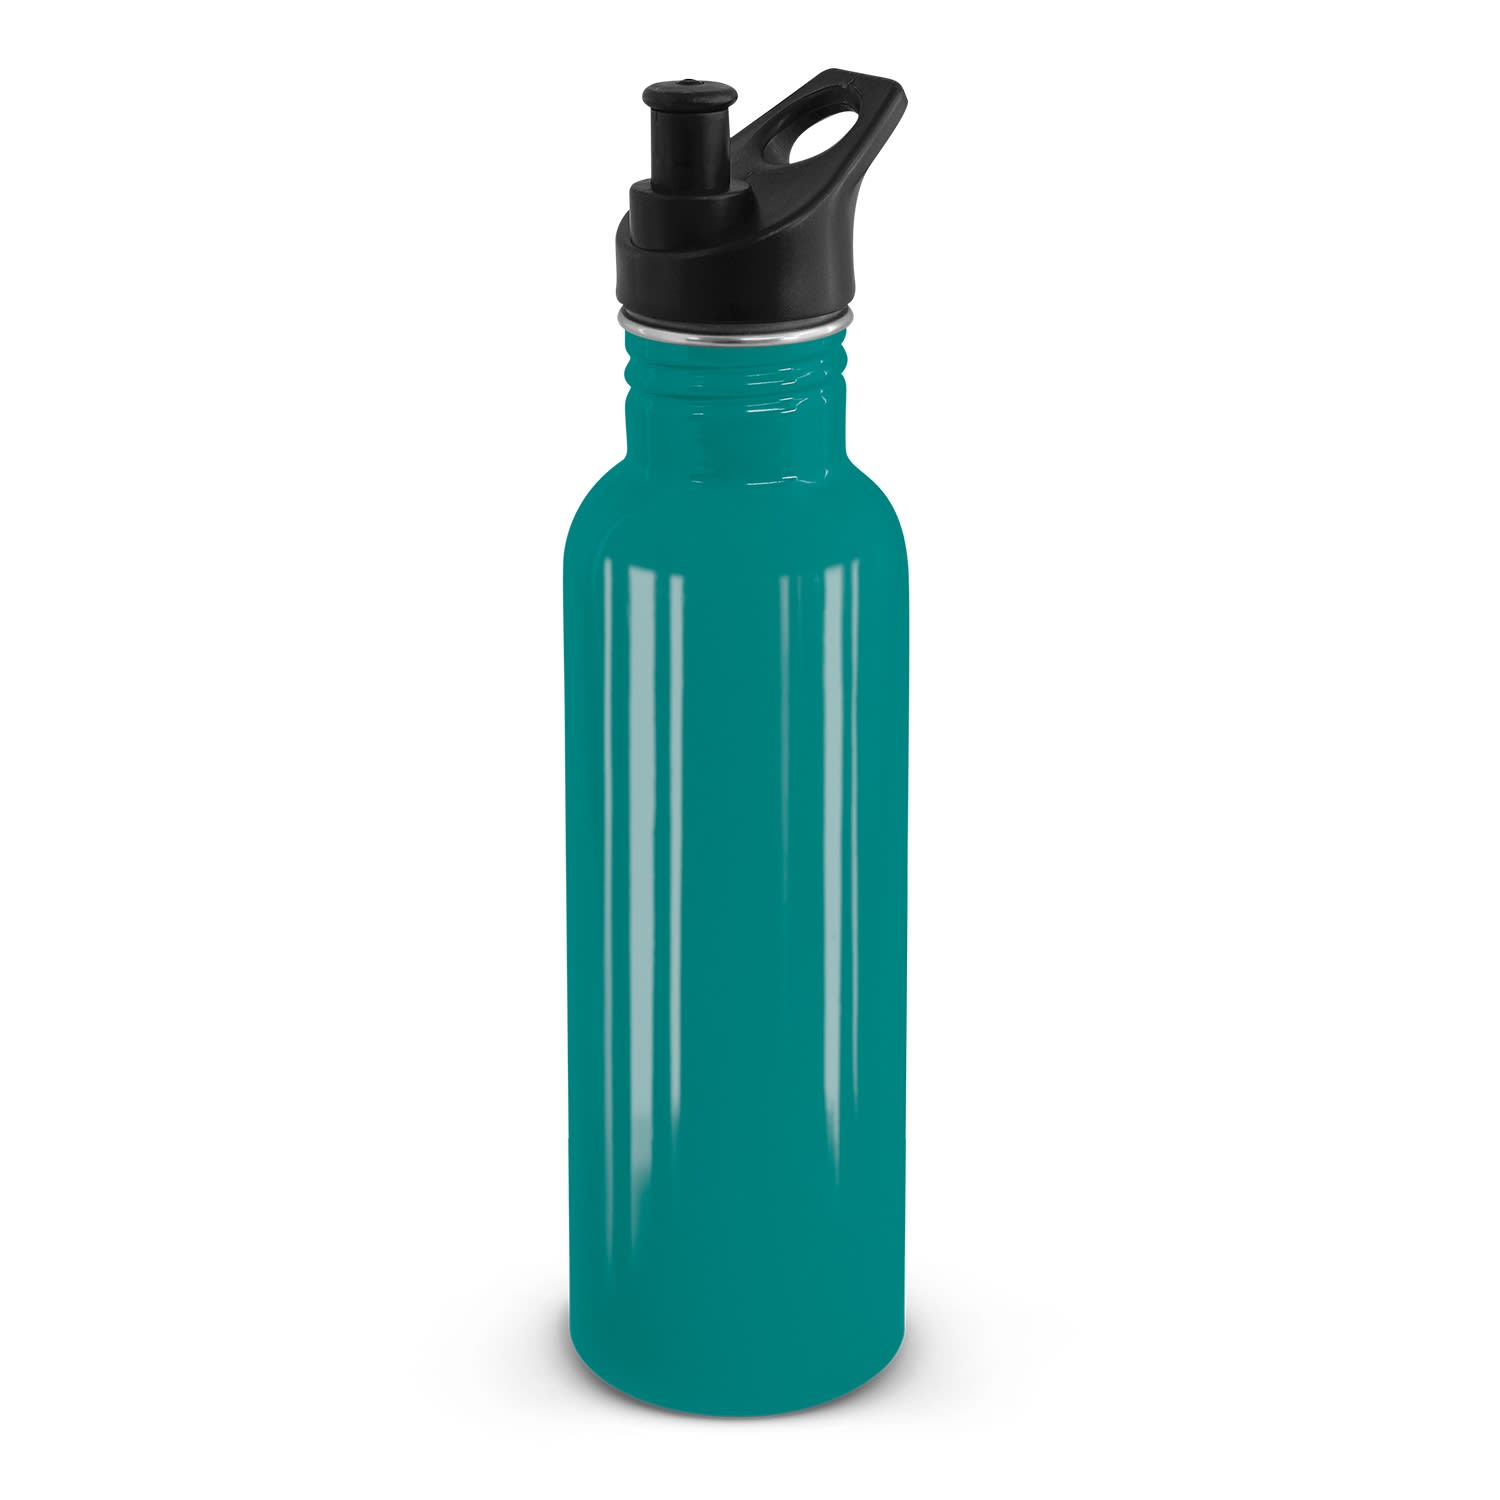 Teal The Drifter Stainless Steel Drink Bottle